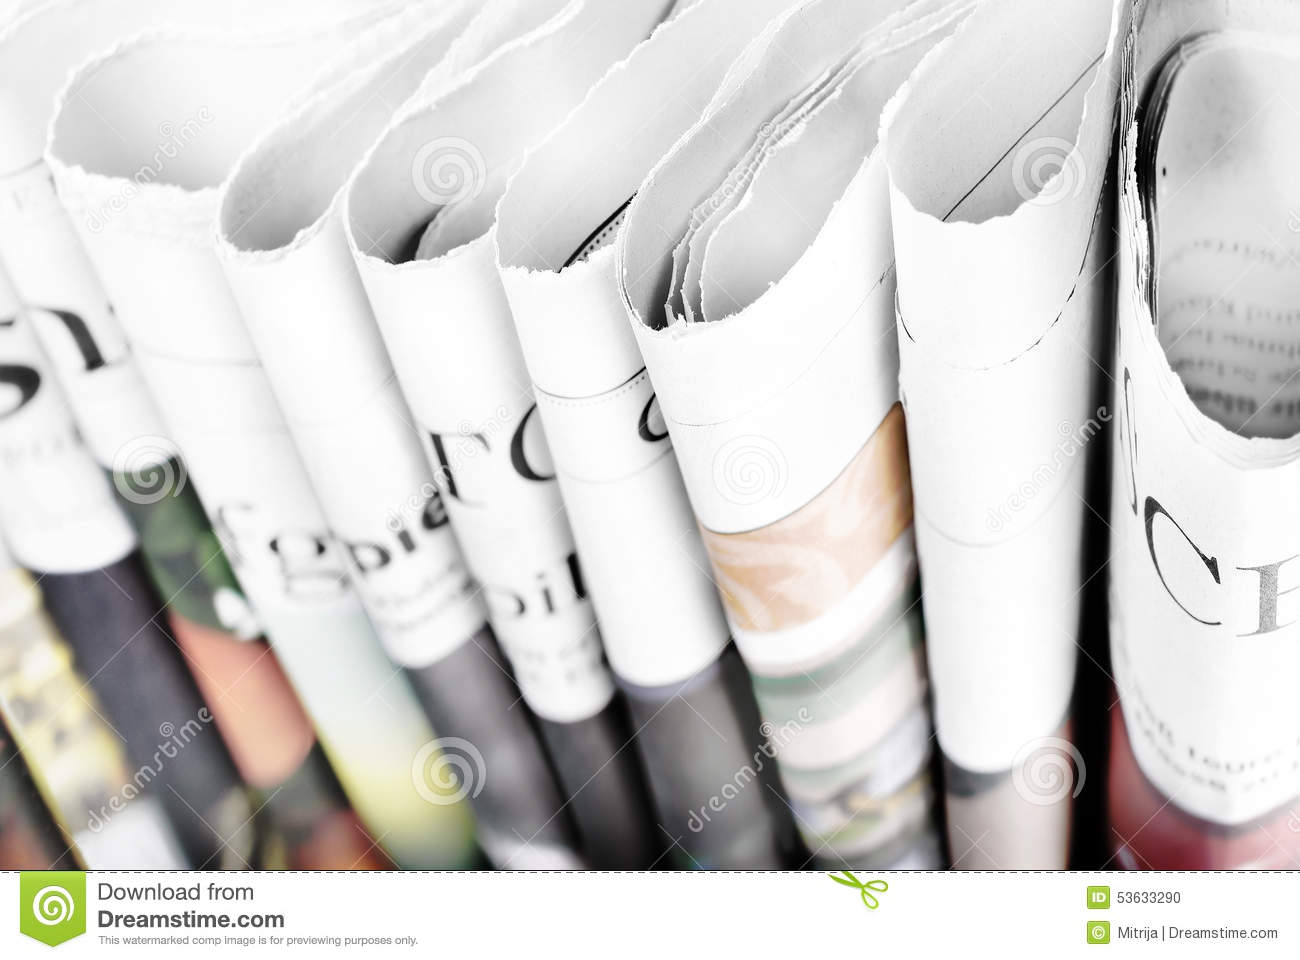 Folded newspapers standing